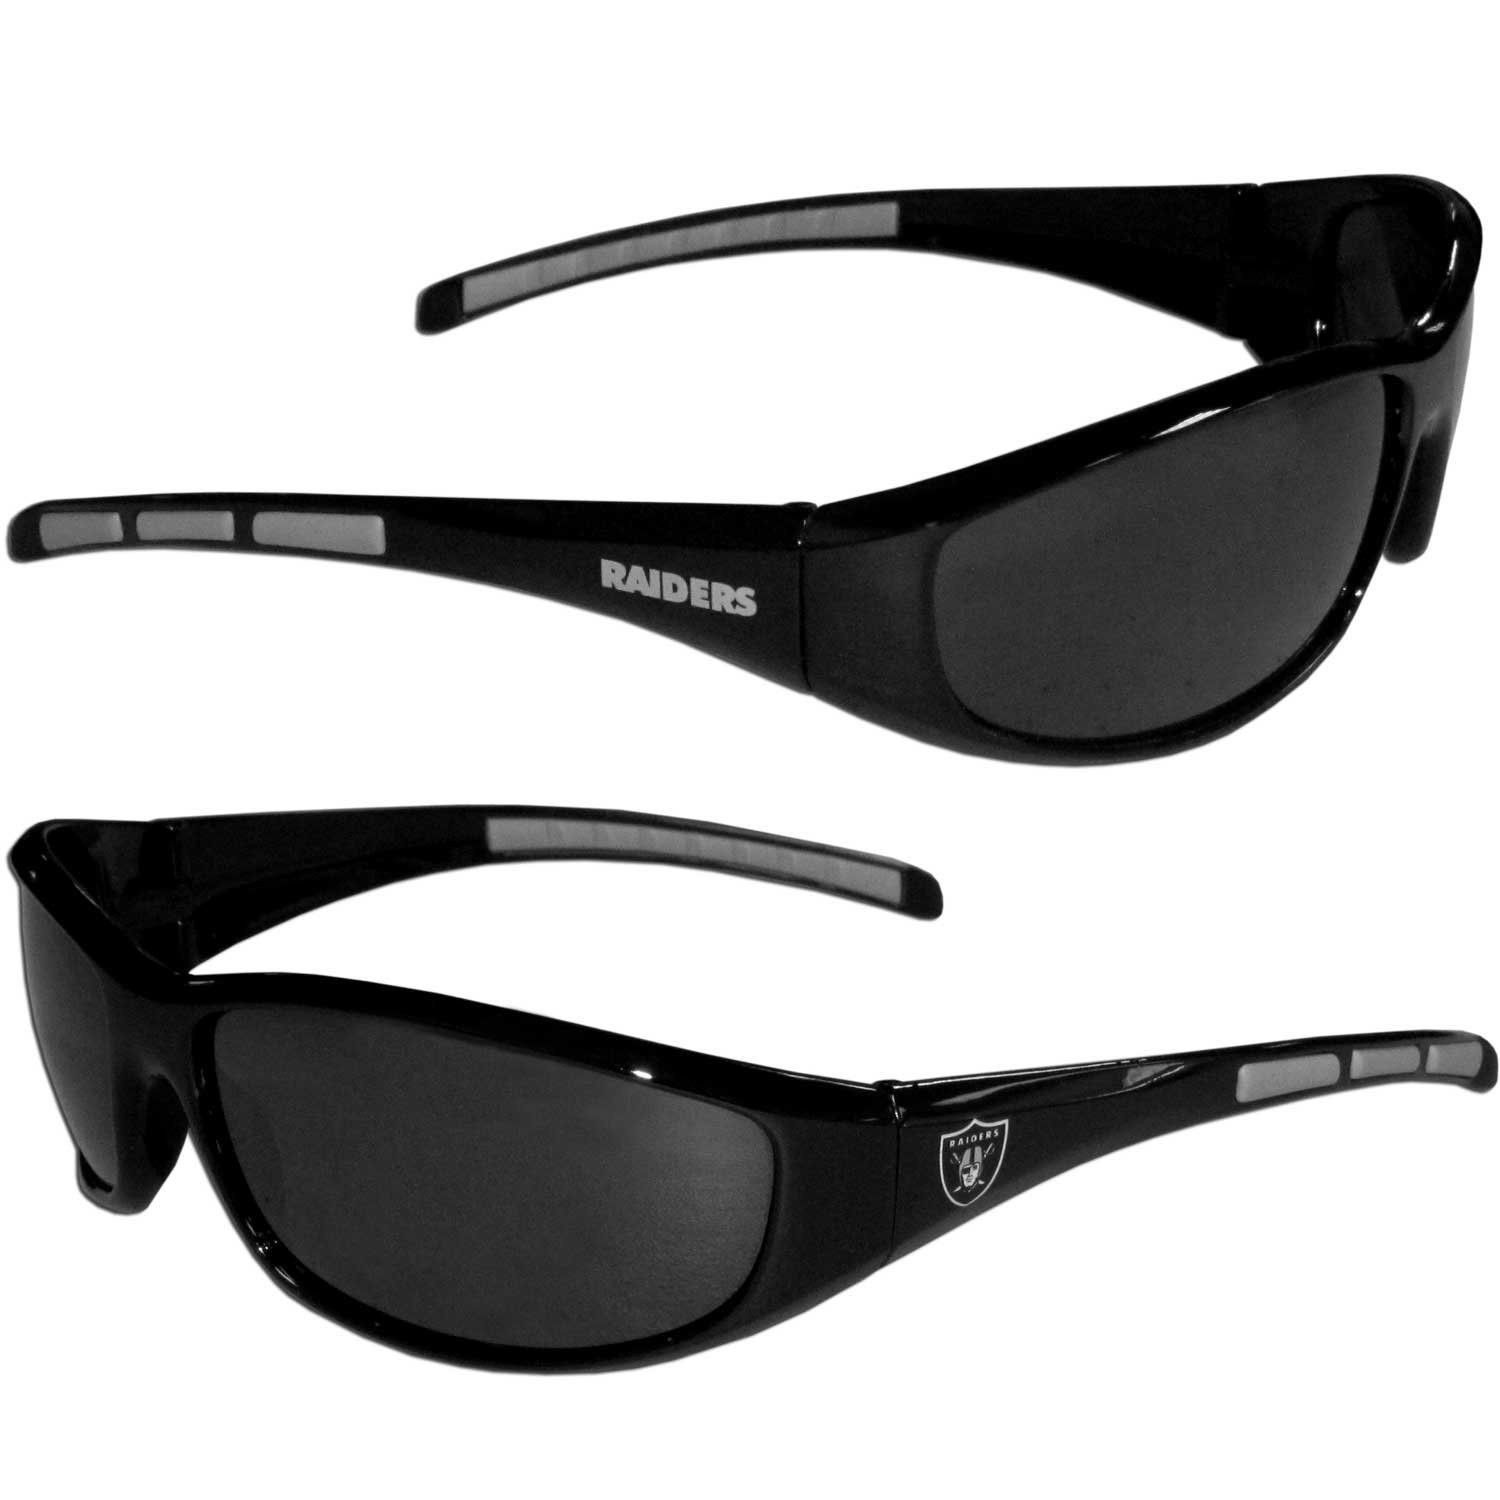 OAKLAND RAIDERS UV 400 WRAP SUNGLASSES TEAM LOGO NFL FOOTBALL #1